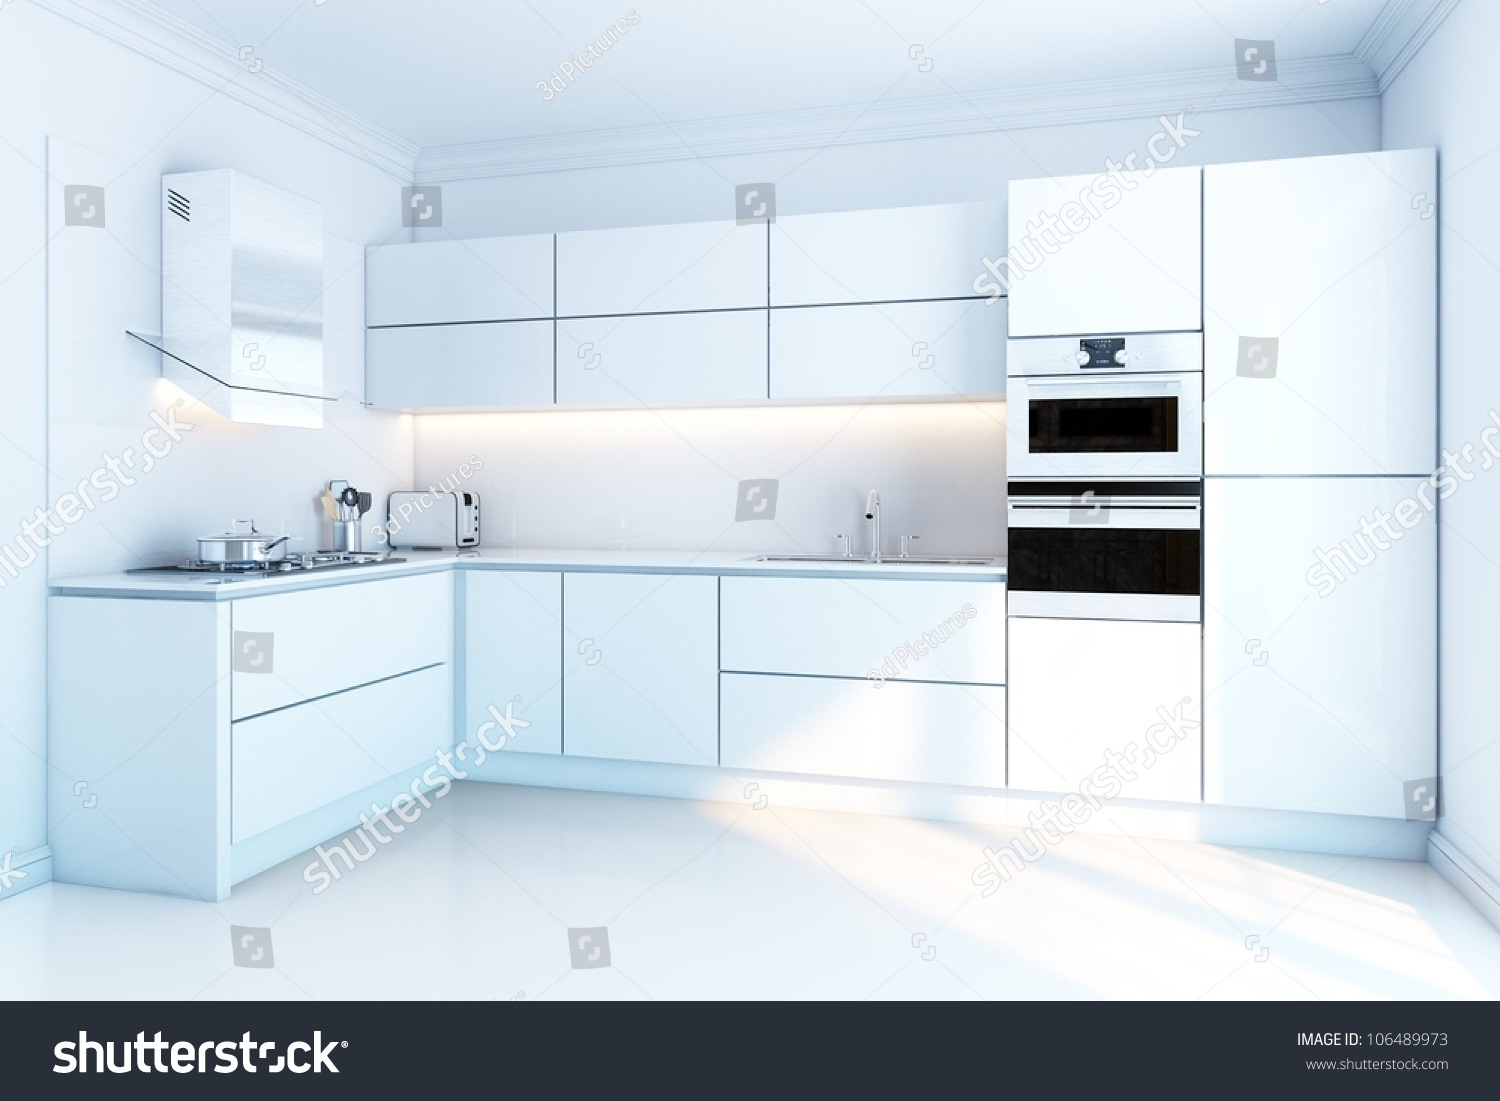 Interior design of clean modern white kitchen stock photo Clean modern interior design